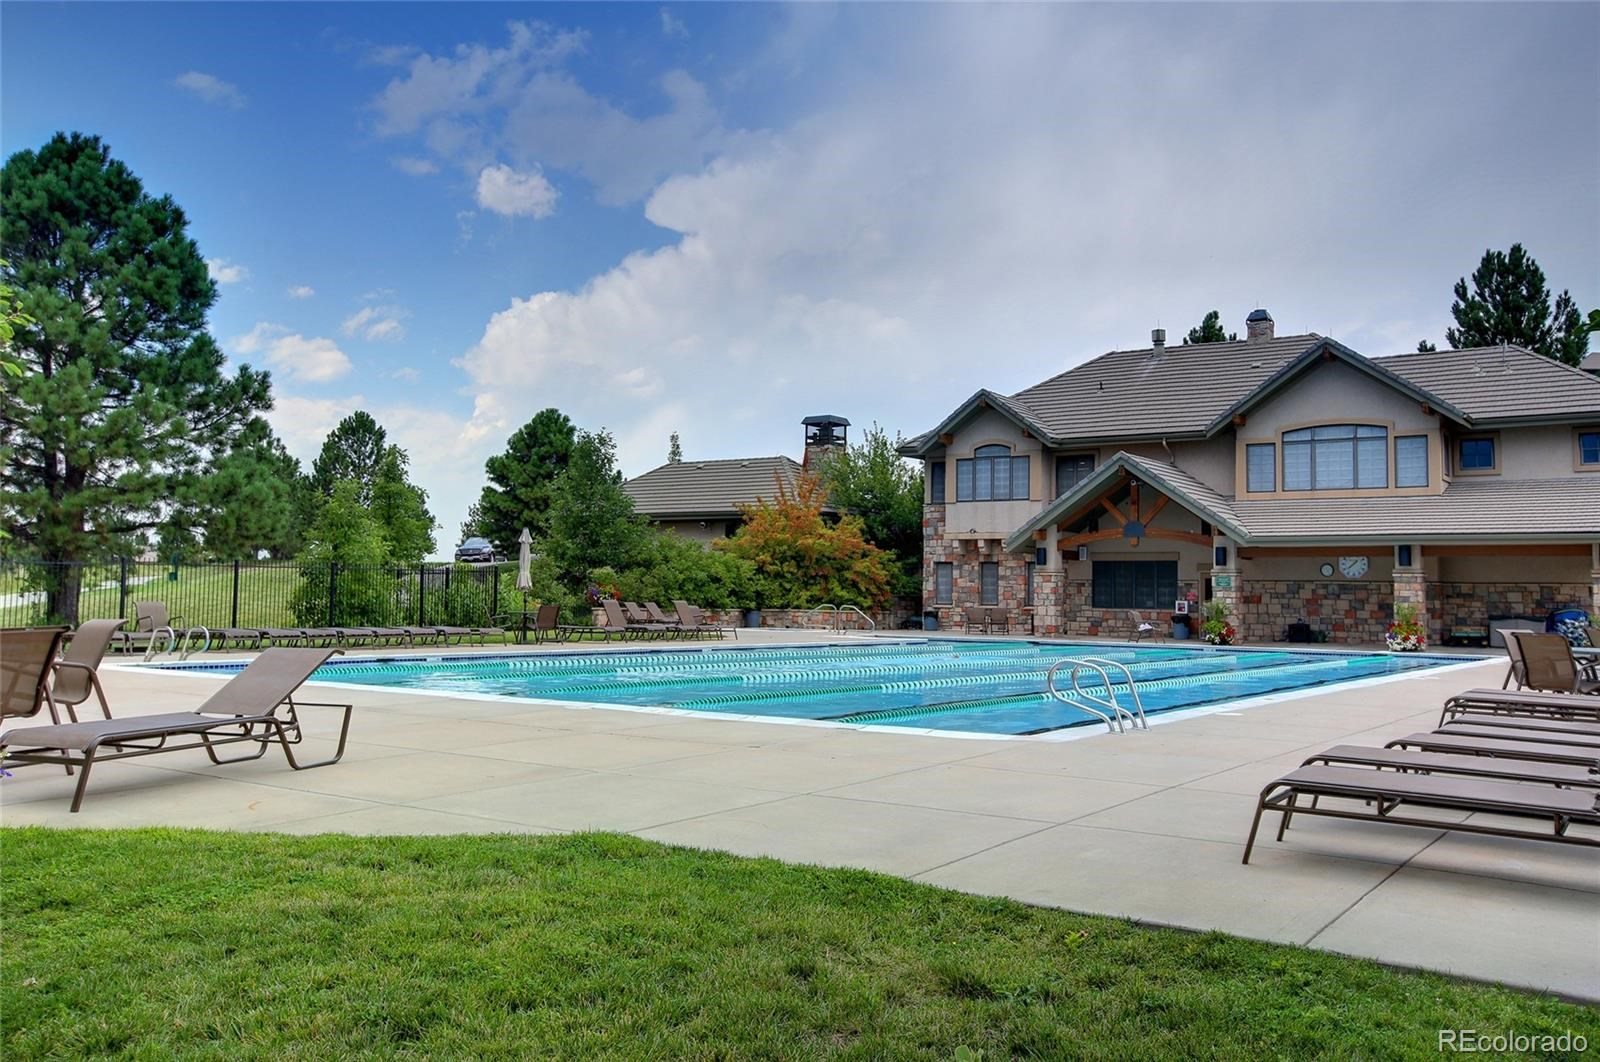 MLS# 7138743 - 14 - 965 Country Club Parkway, Castle Rock, CO 80108